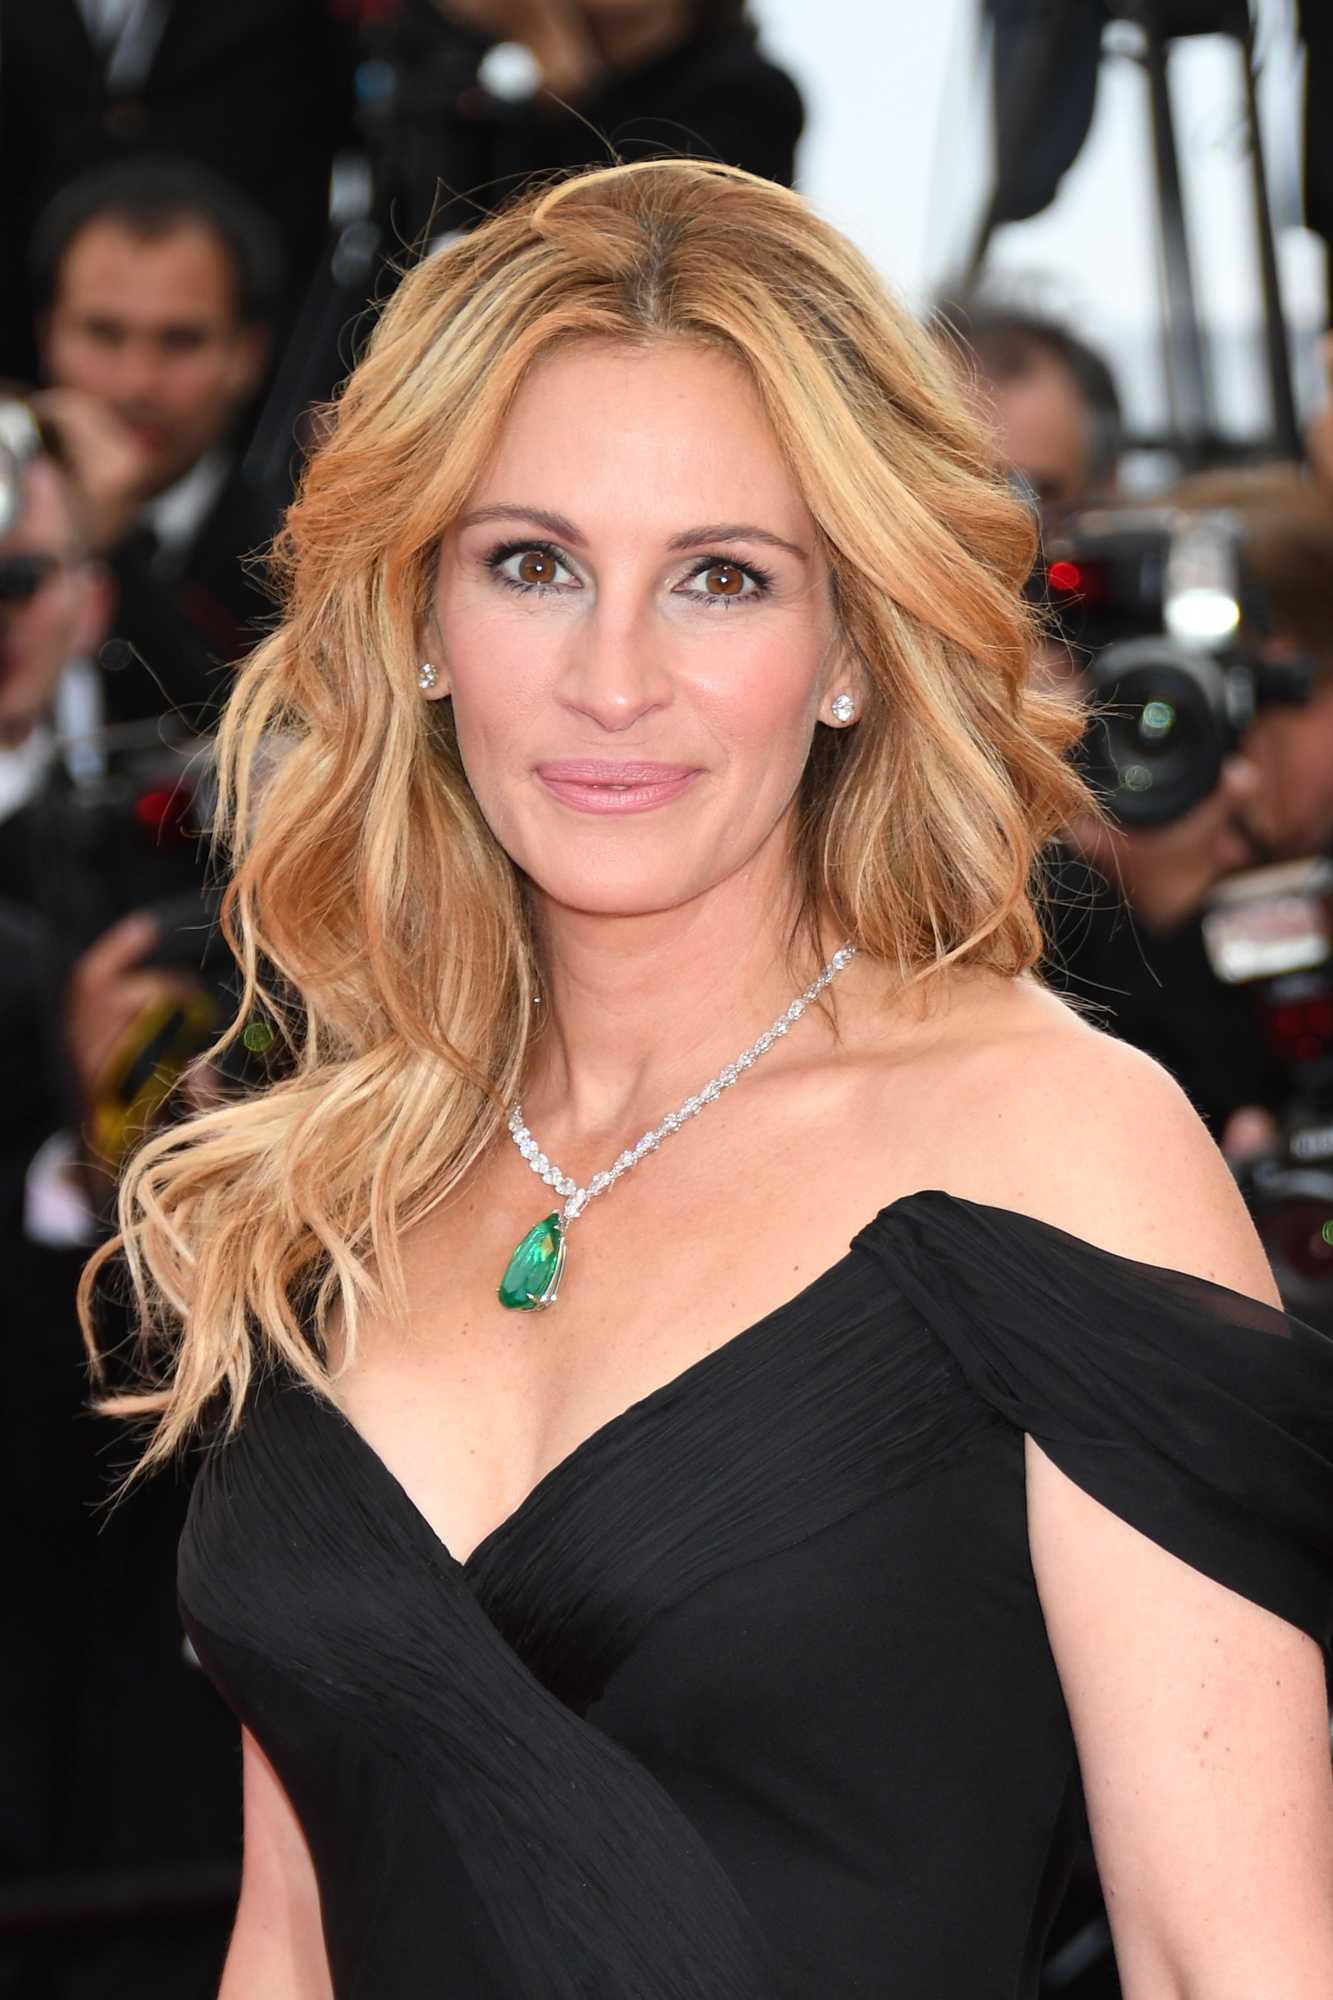 Julia Roberts en Cannes 2016 premiere Money Monster